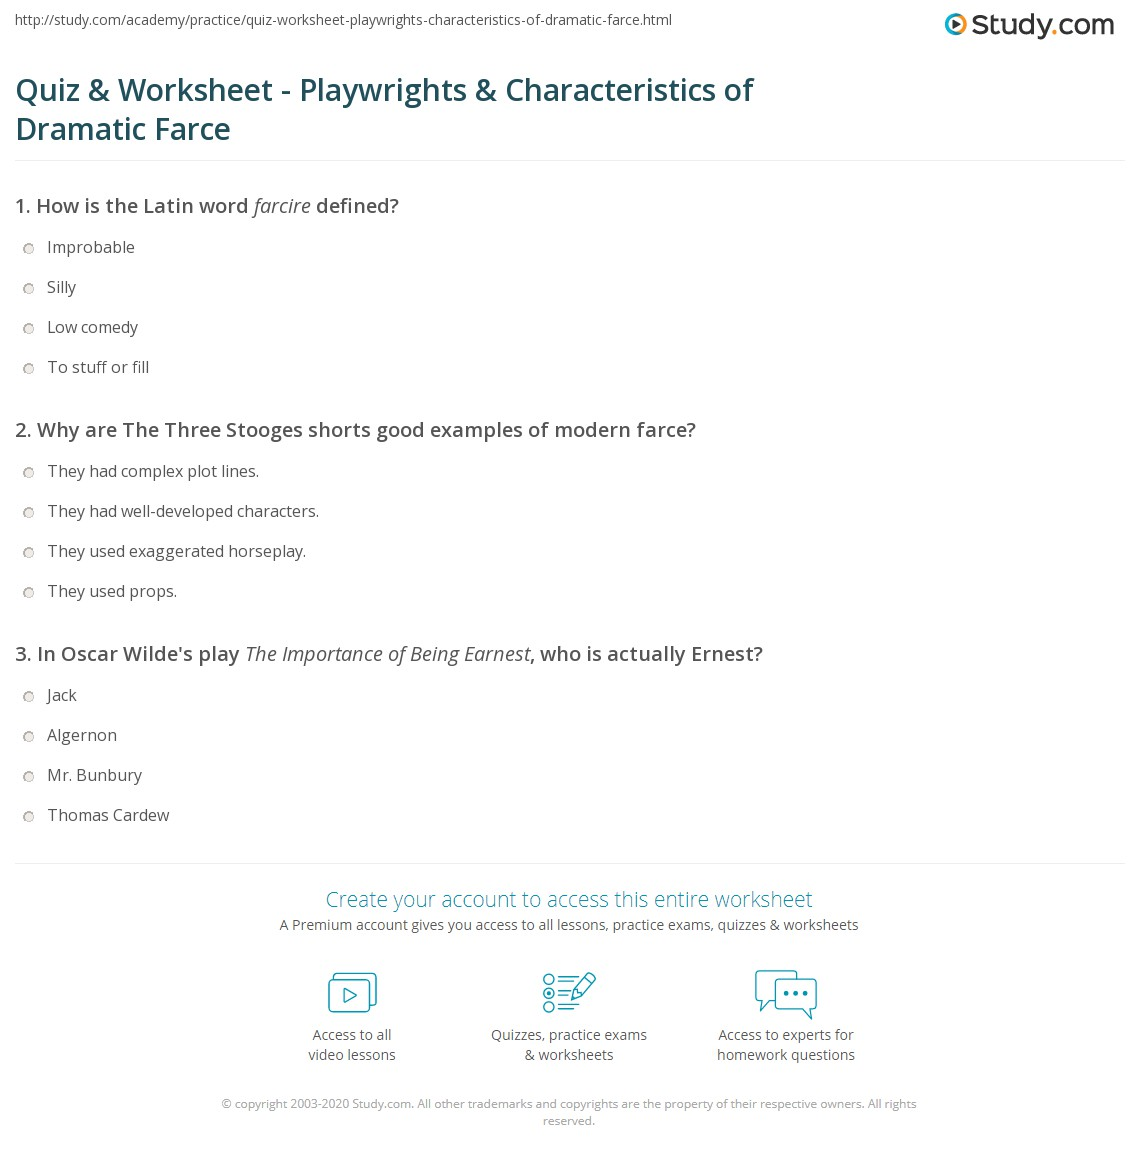 Quiz Worksheet Playwrights Characteristics Of Dramatic Farce